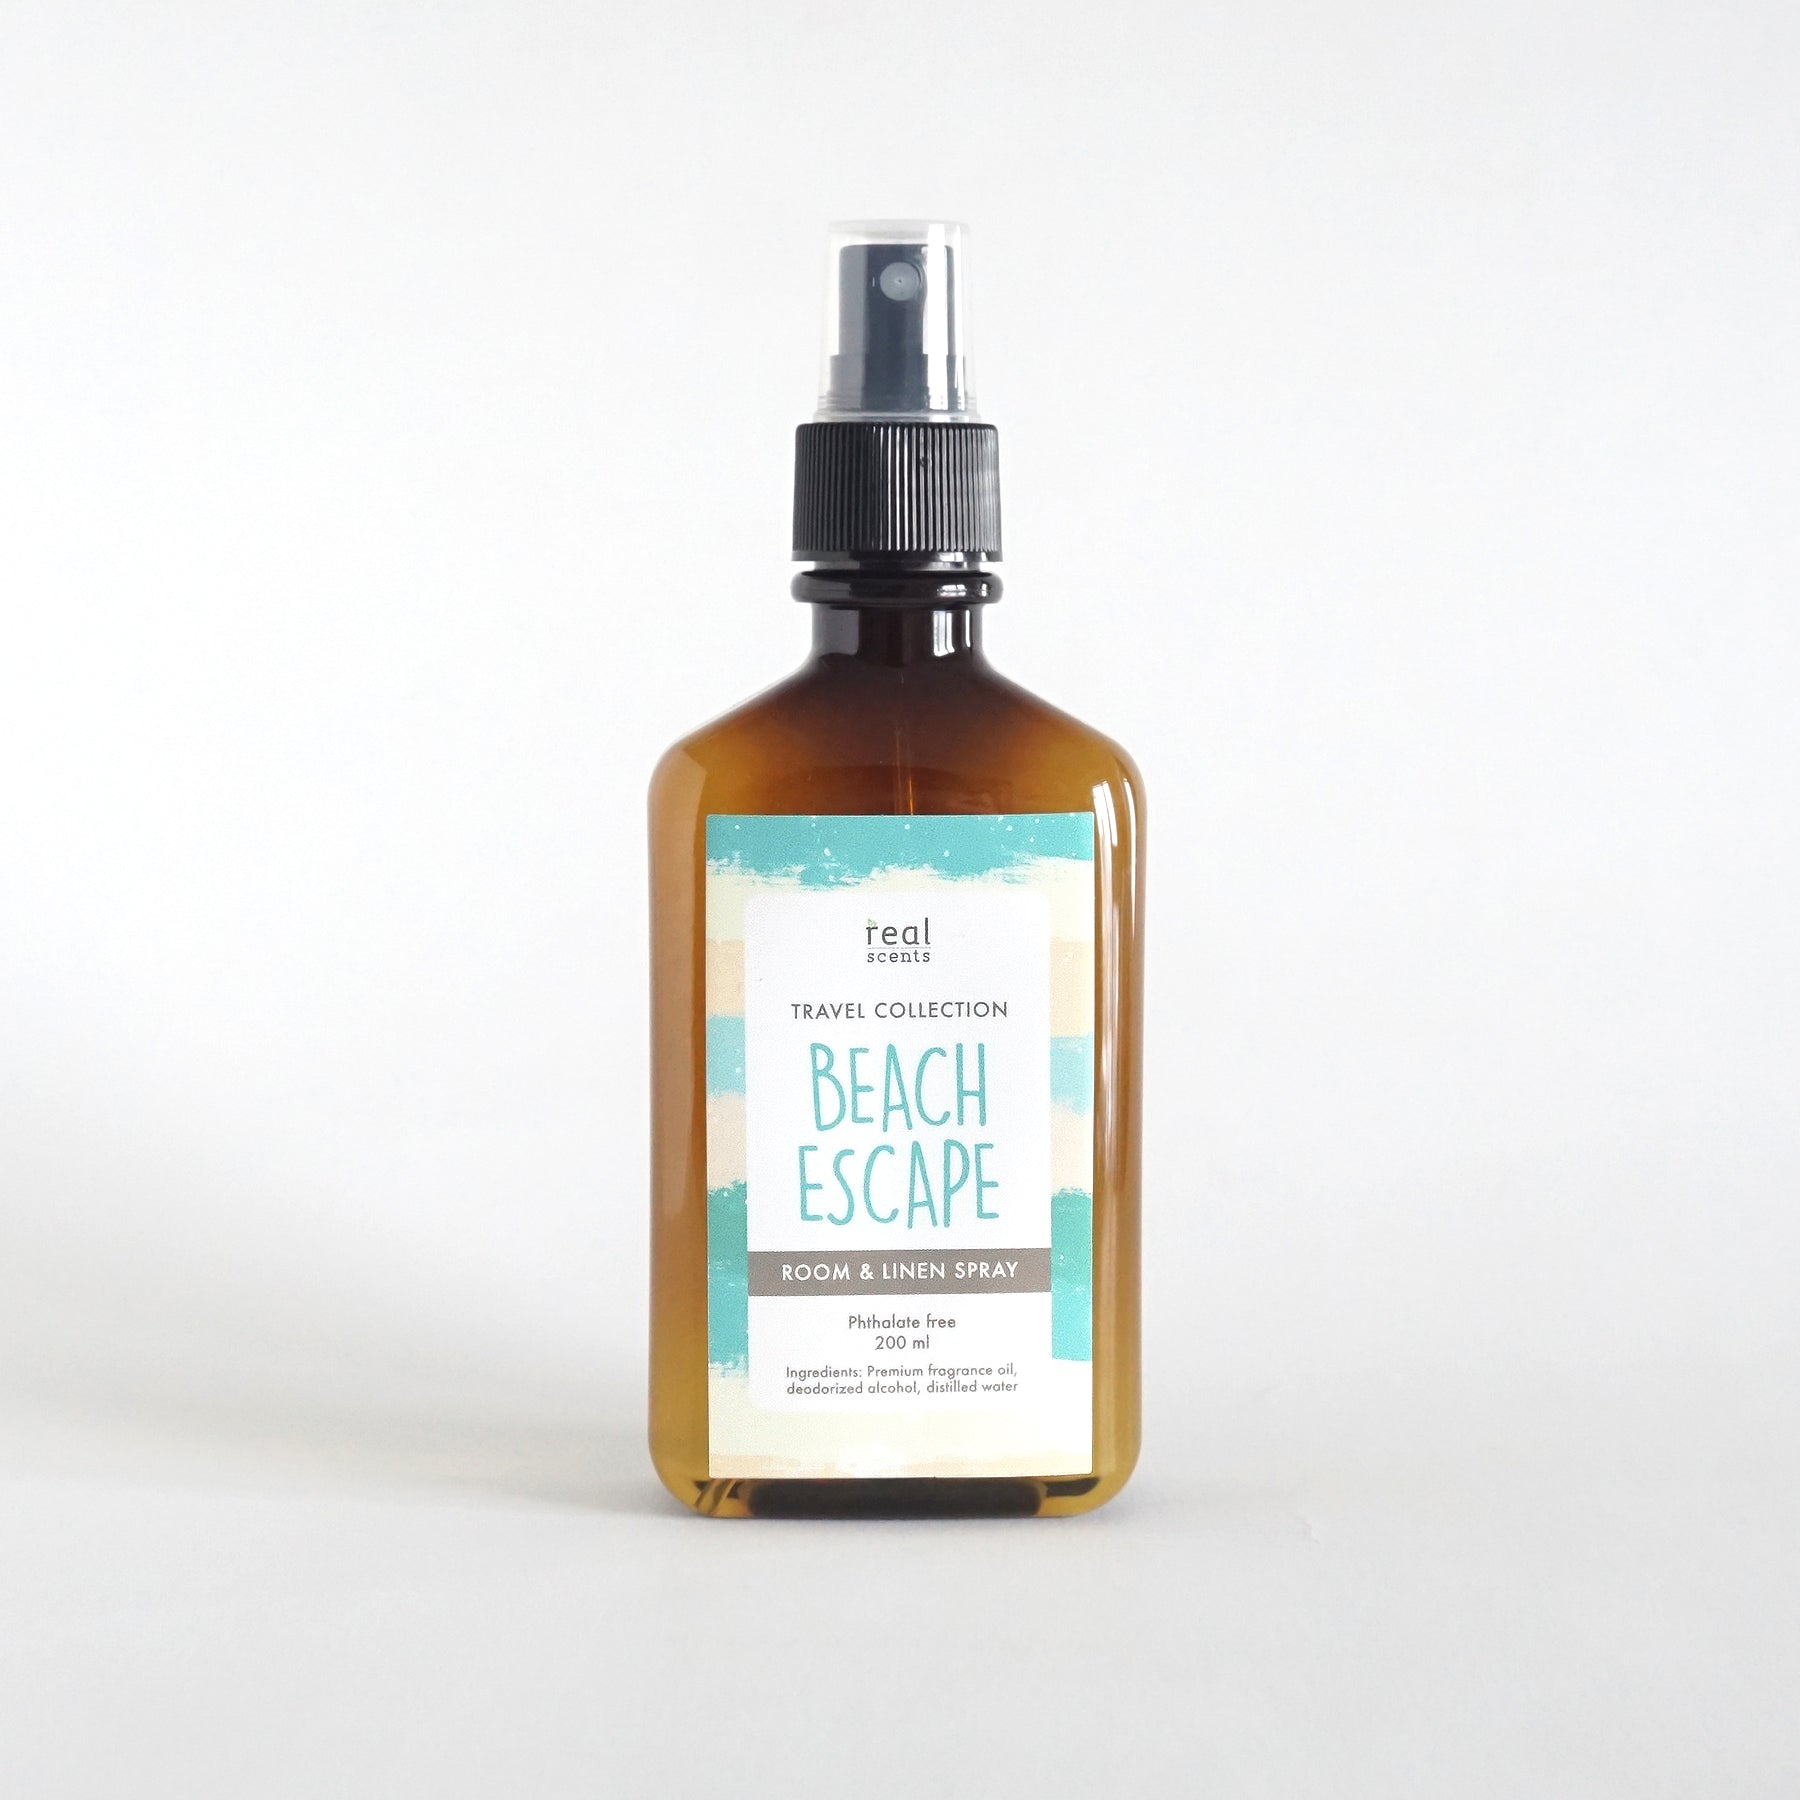 Beach Escape Room and Linen Spray 200ml